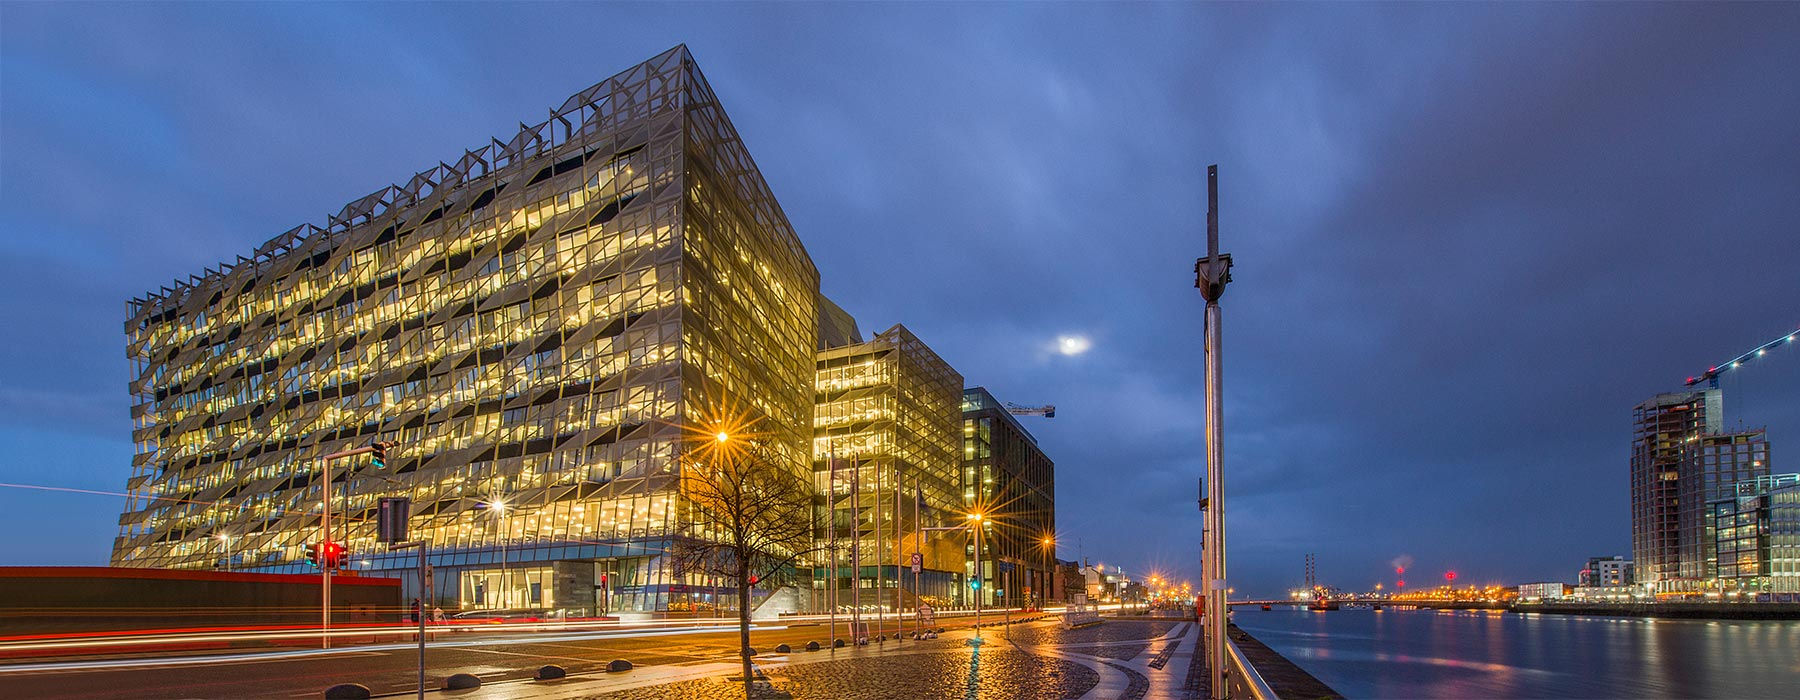 Central Bank of Ireland, Dublin